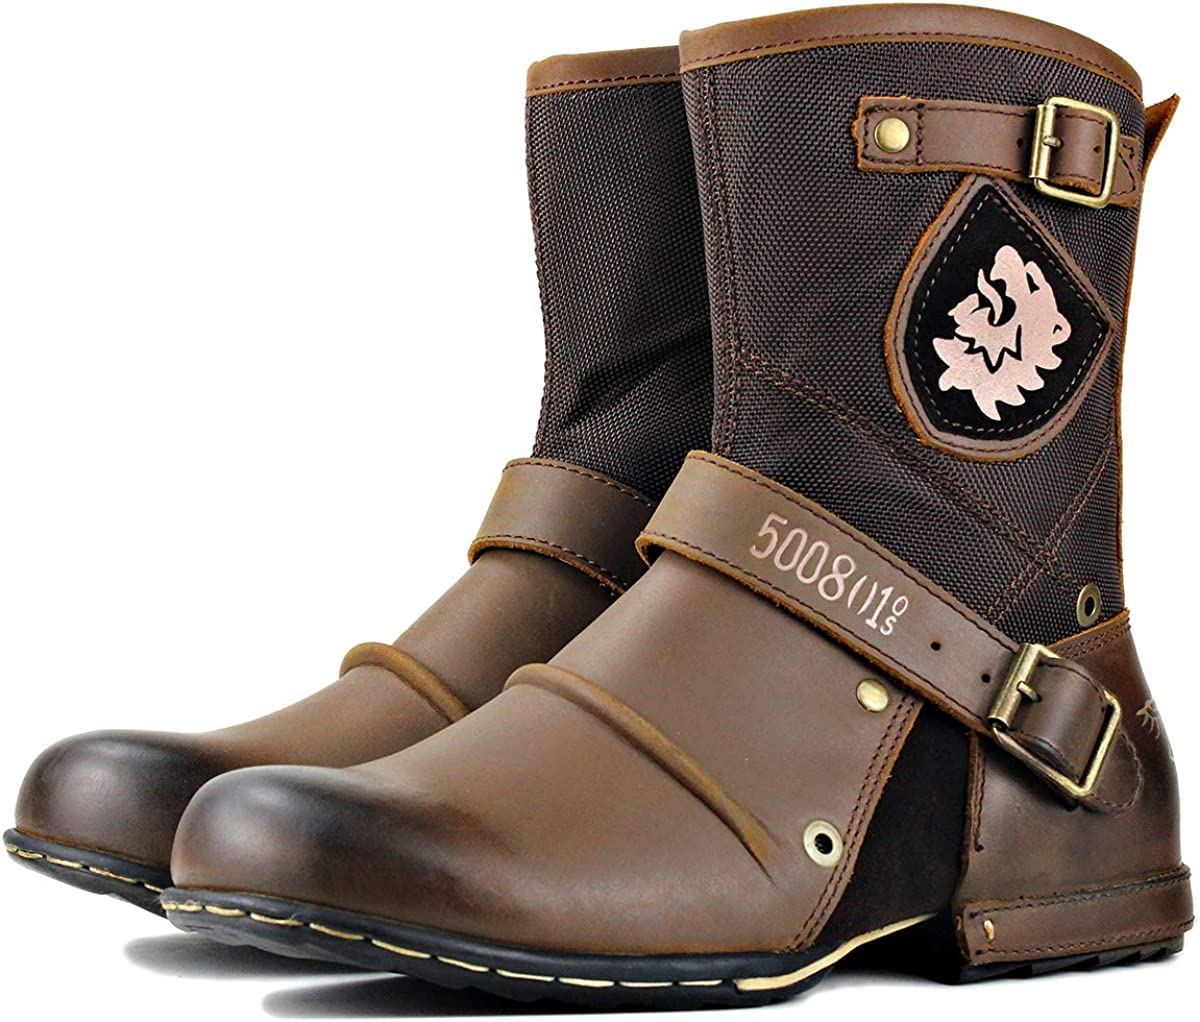 OSSTONE Moto Boots for Men Fashion Zipper-up Leather Chukka Boots Casual Shoes OS-5008-7